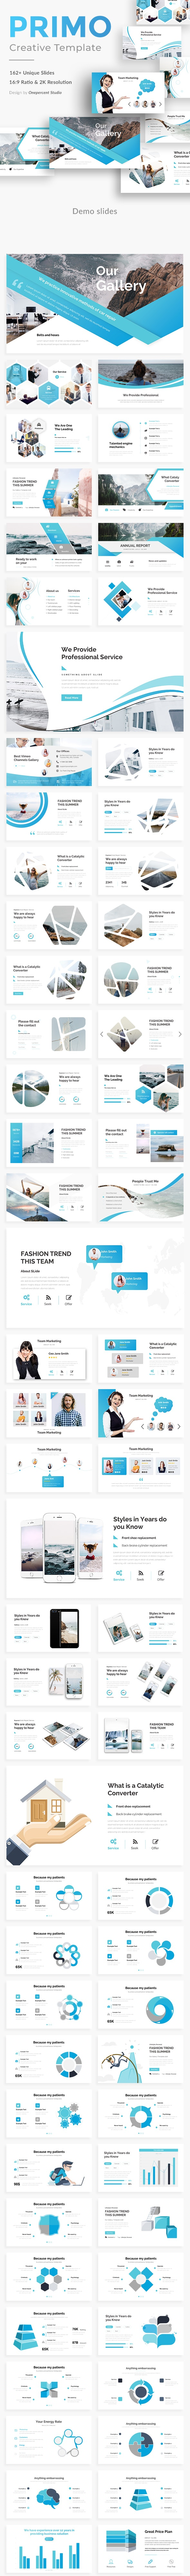 Primo Creative Powerpoint Template - Creative PowerPoint Templates